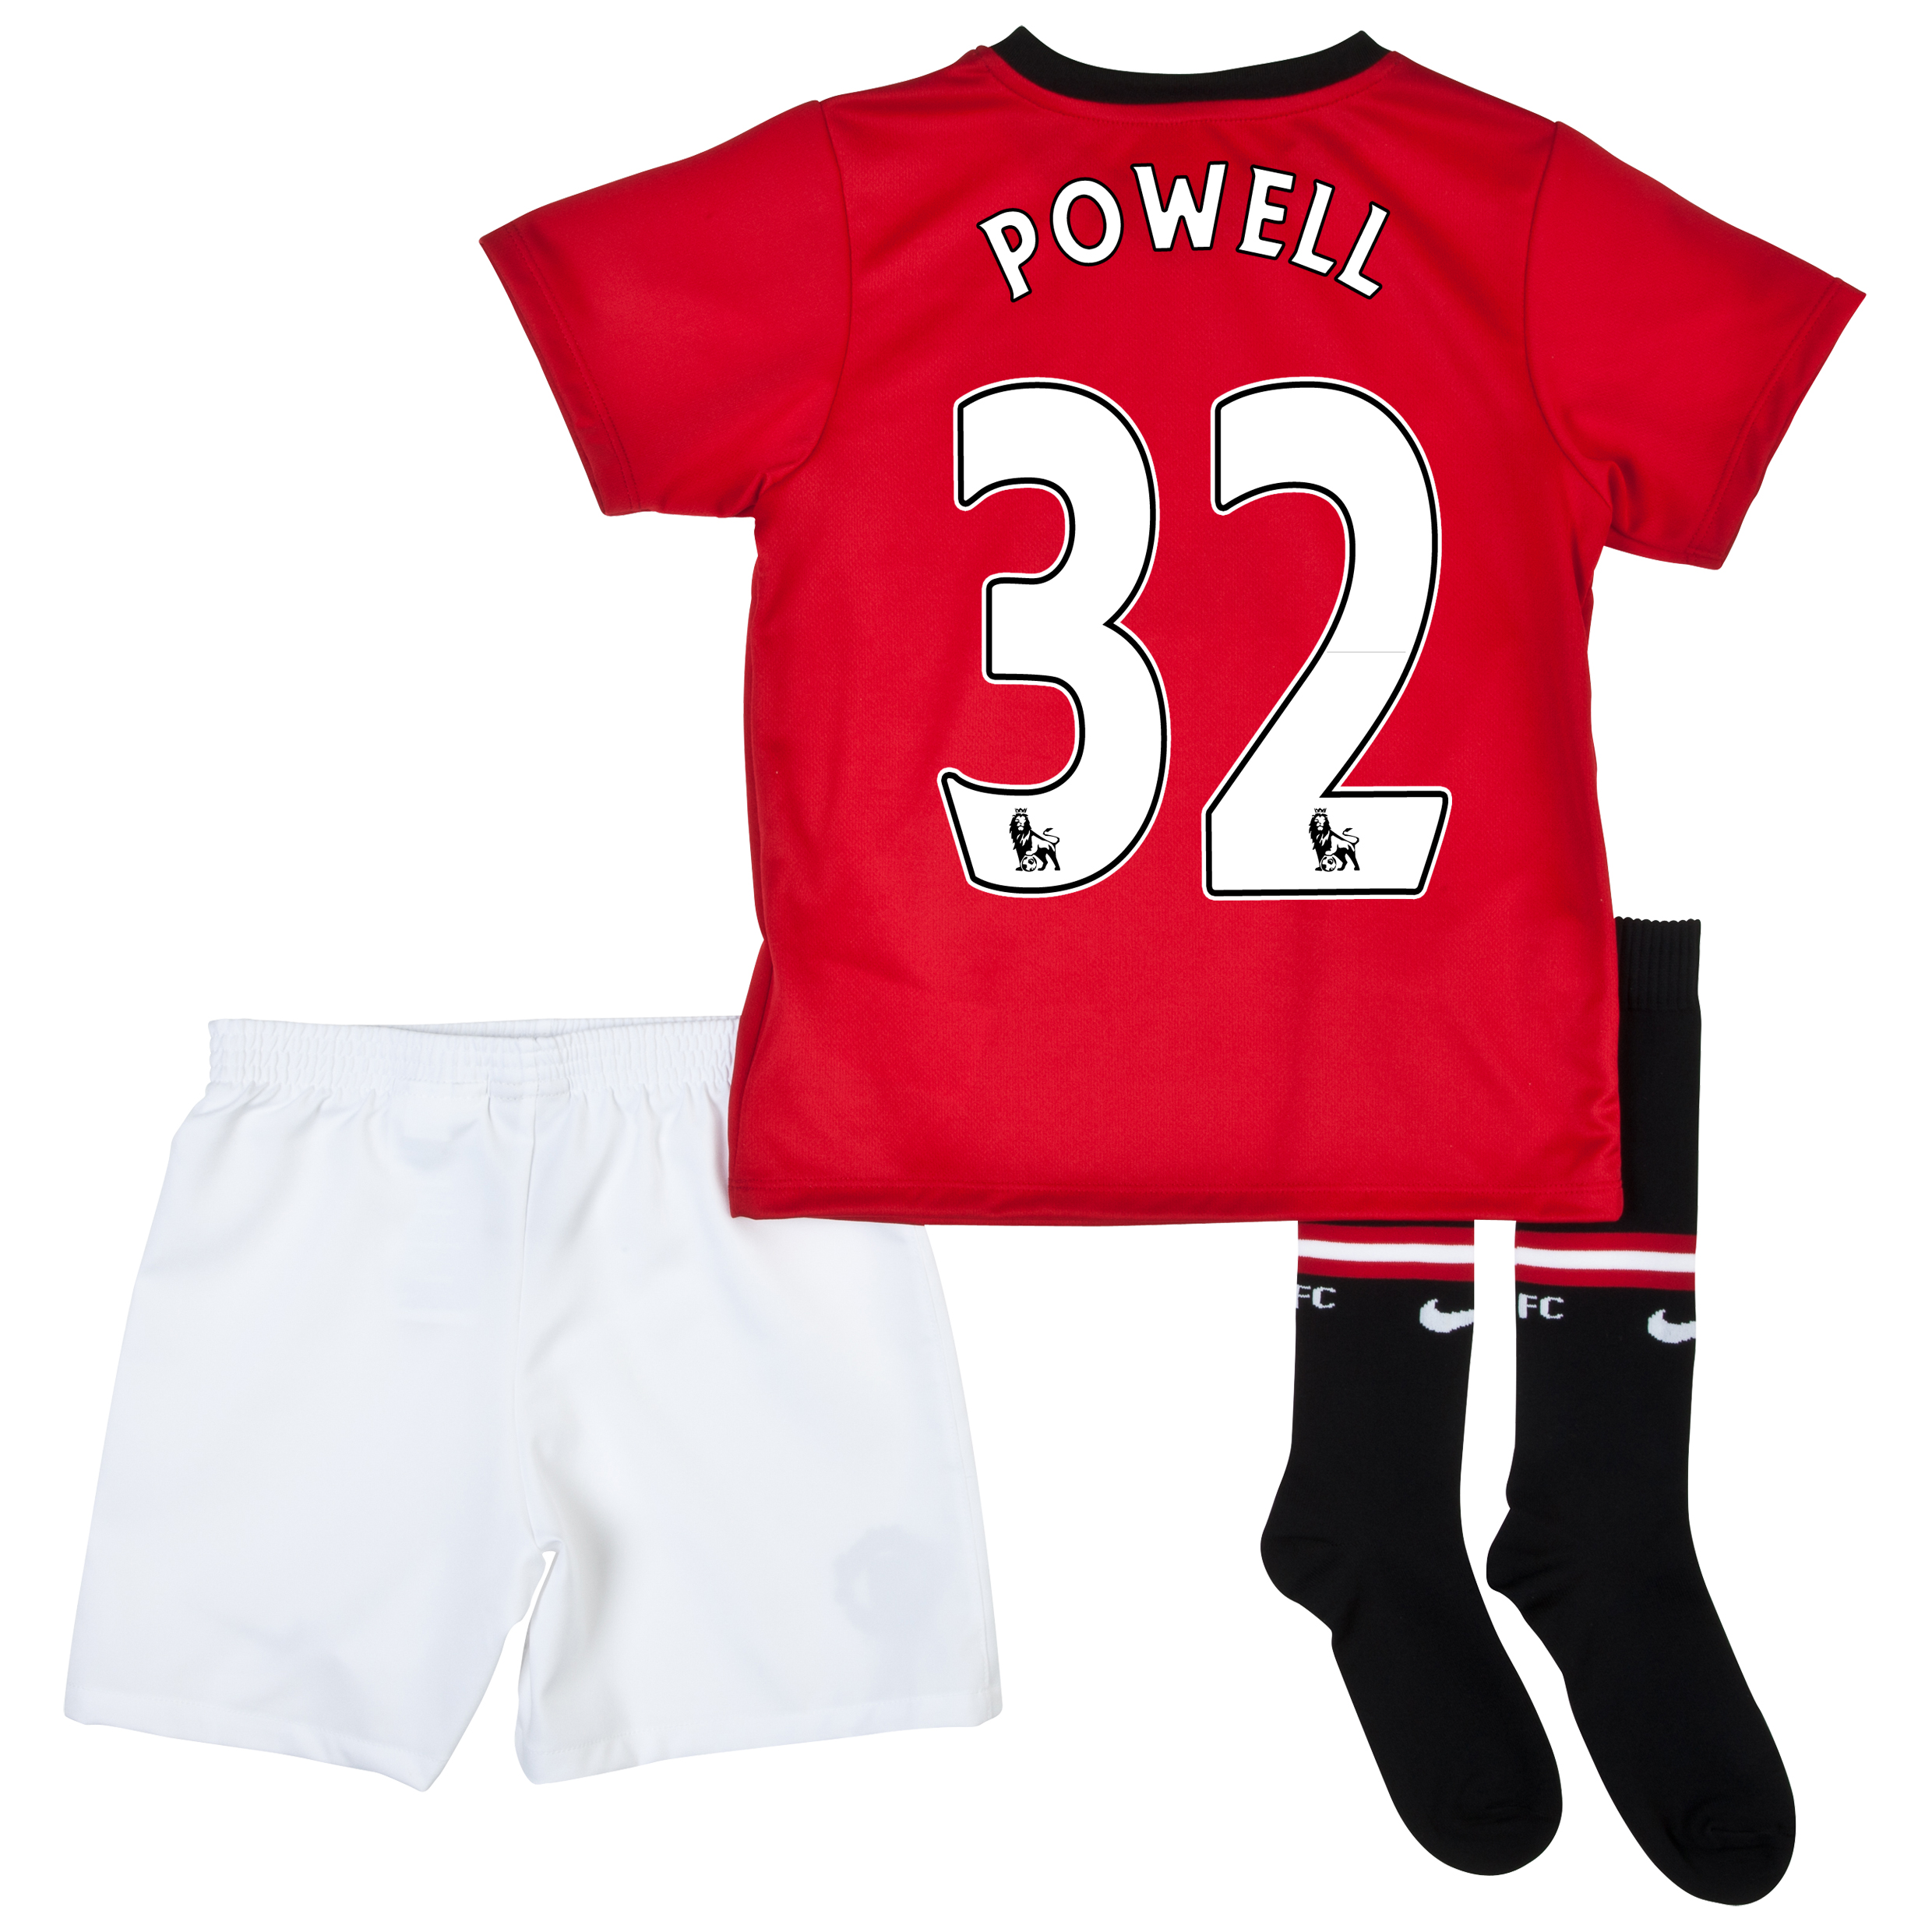 Manchester United Home Kit 2013/14 - Little Boys with Powell 25 printing